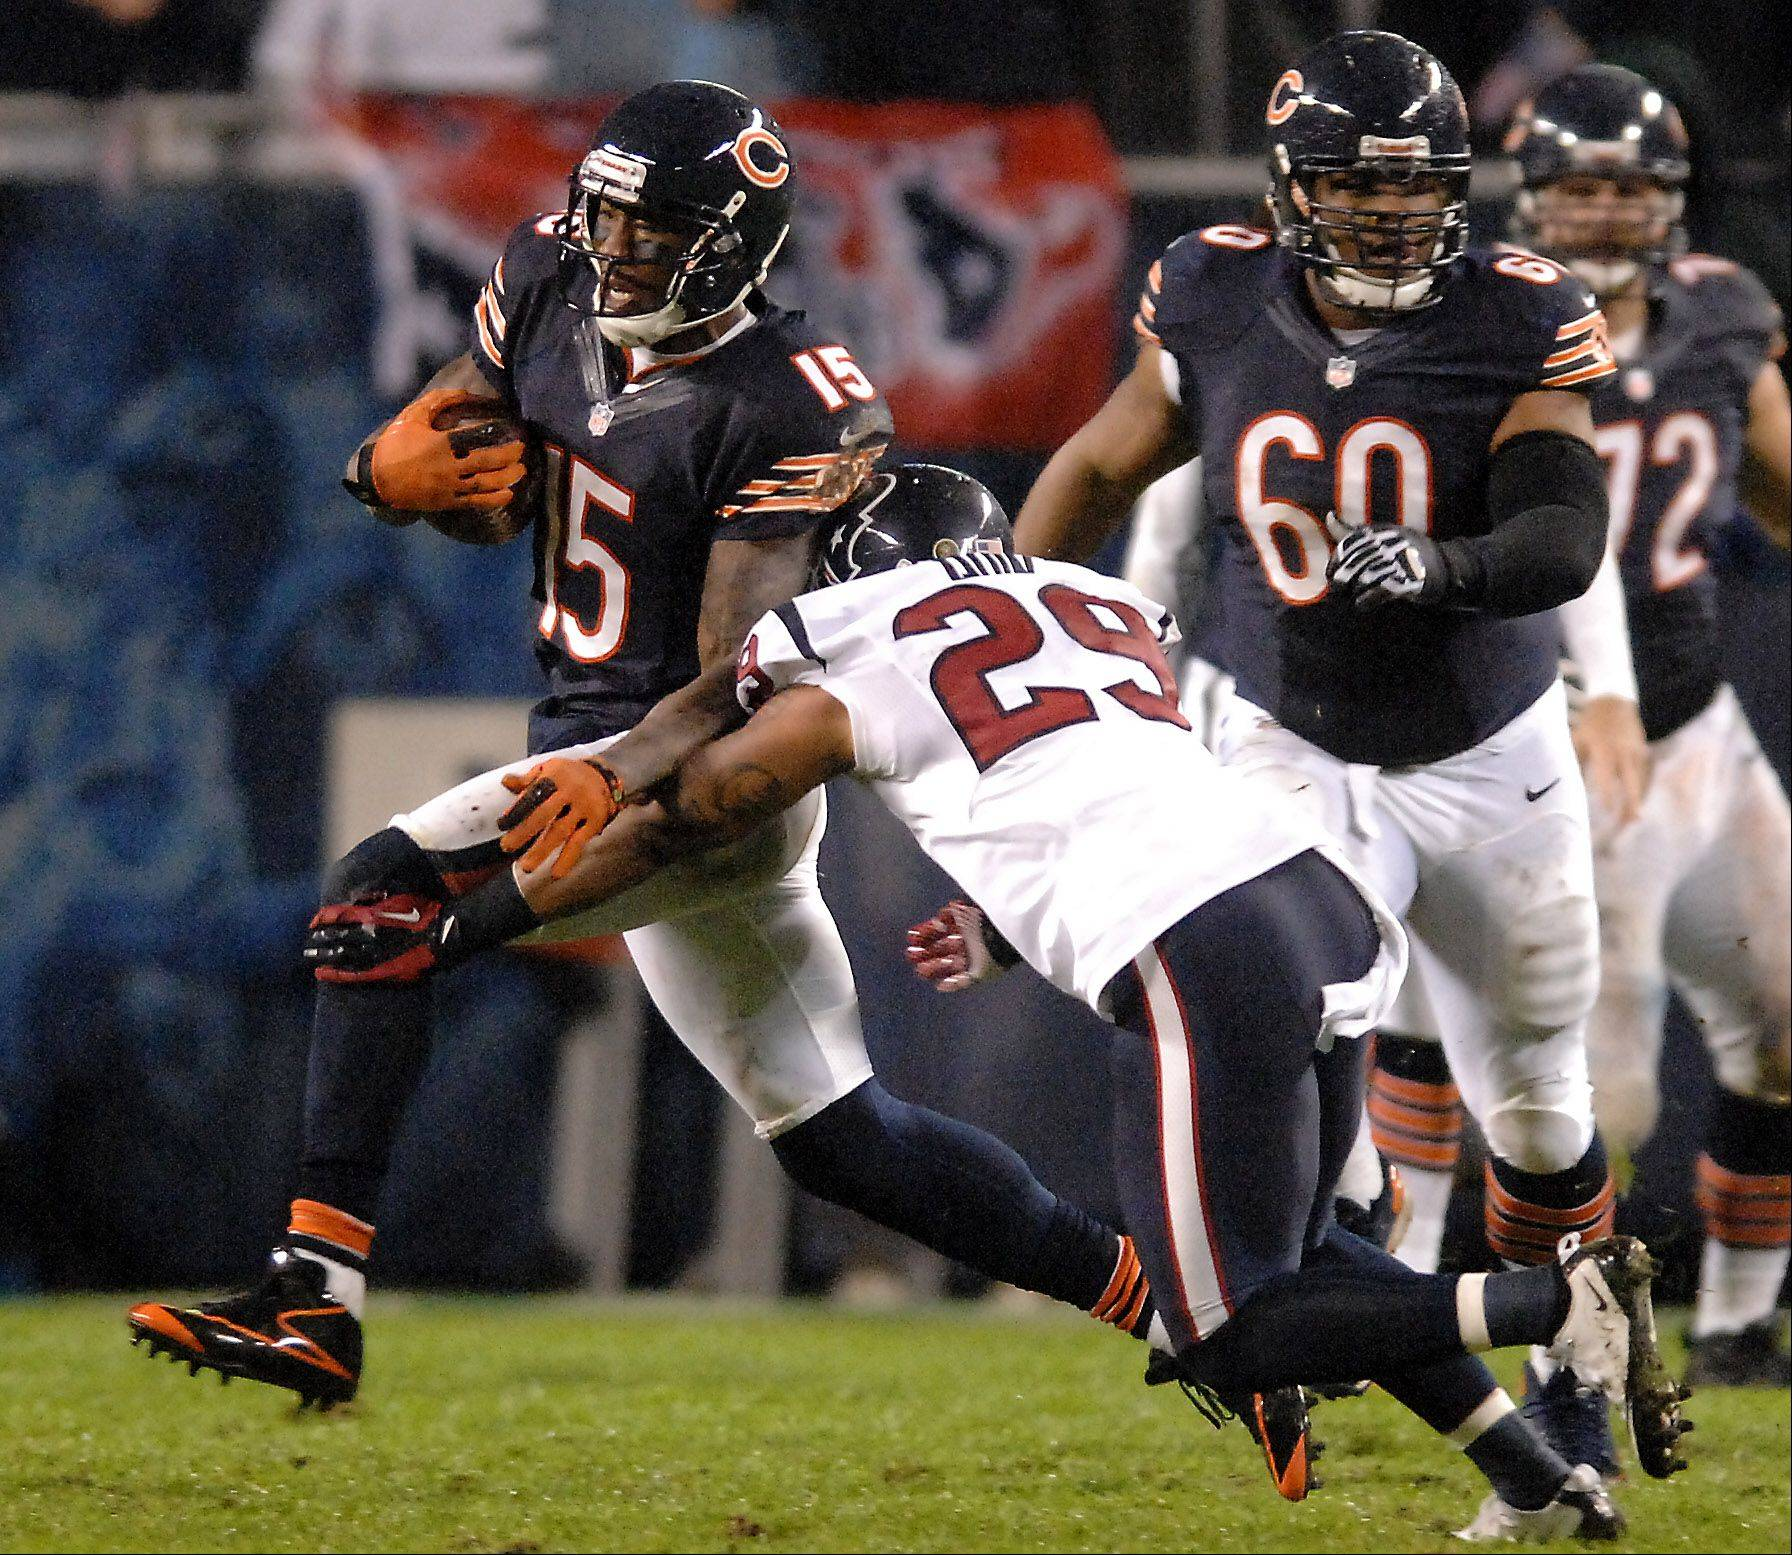 Chicago Bears wide receiver Brandon Marshall (15) breaks a tackle attempt by Houston Texans strong safety Glover Quin (29) during Sunday's game at Soldier Field in Chicago.